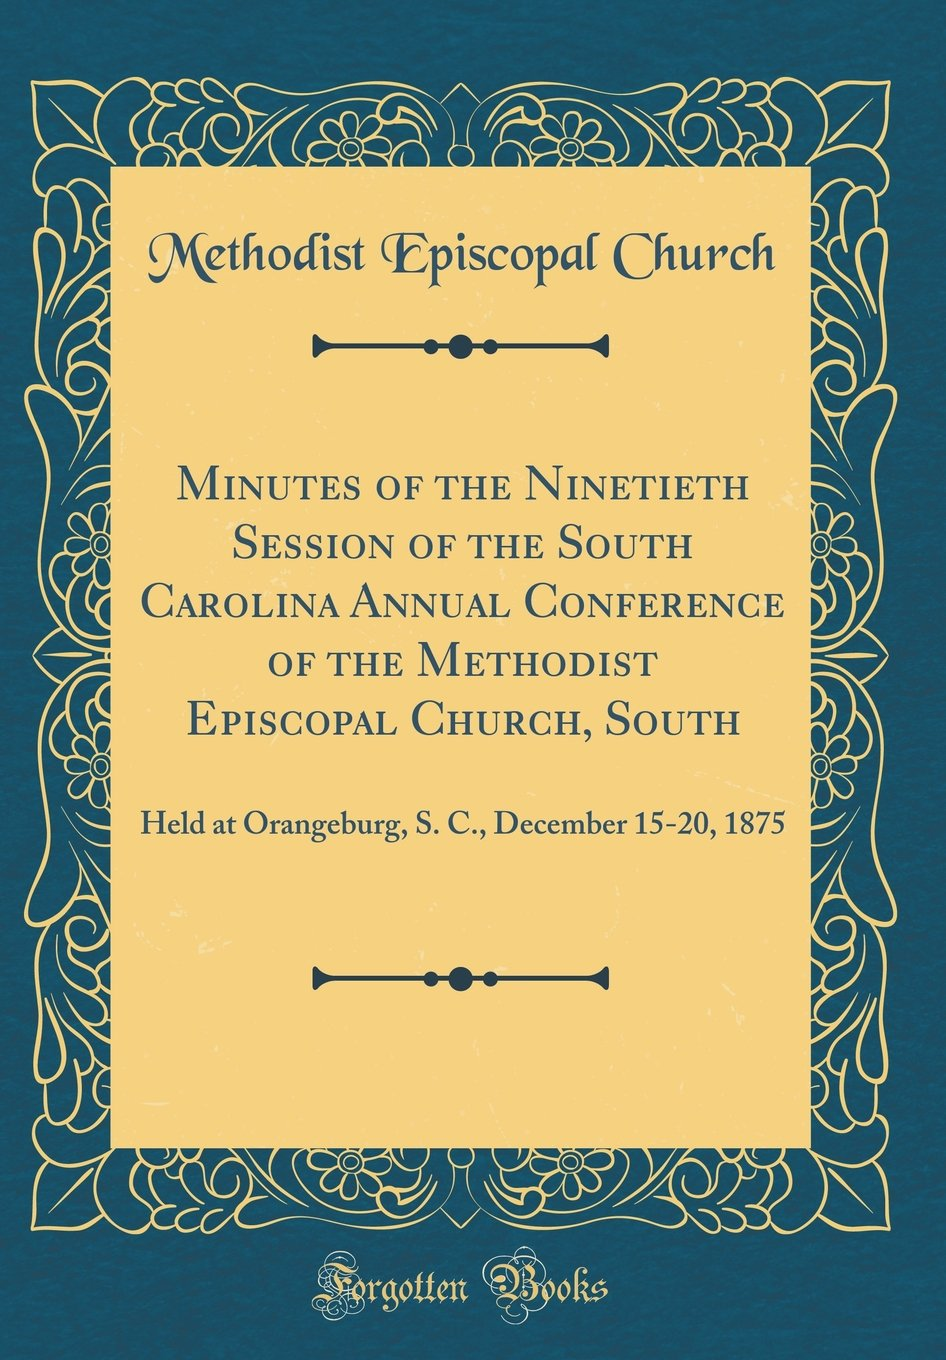 Minutes of the Ninetieth Session of the South Carolina Annual Conference of the Methodist Episcopal Church, South: Held at Orangeburg, S. C., December 15-20, 1875 (Classic Reprint) pdf